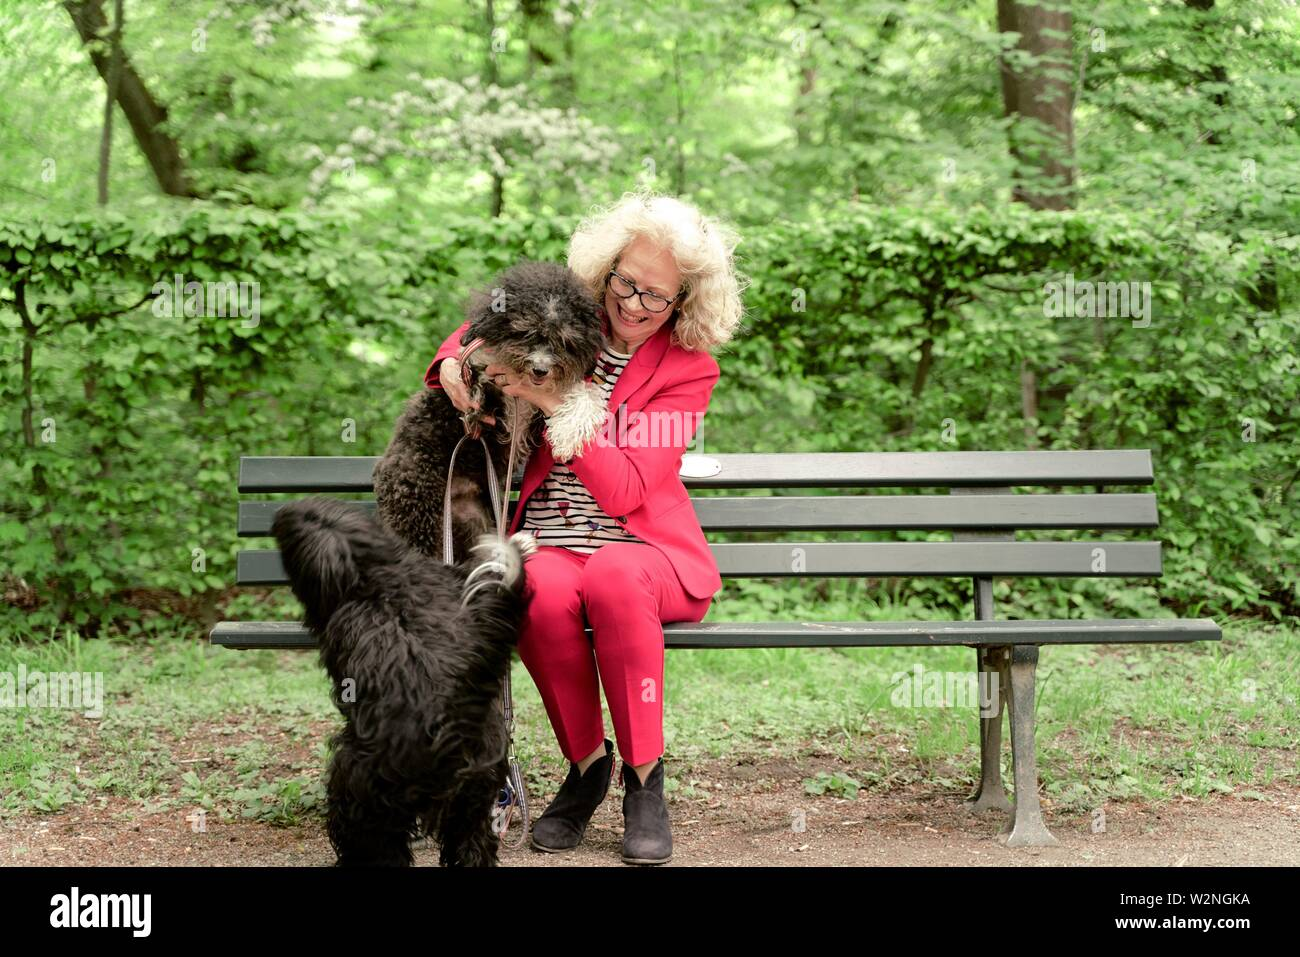 senior woman (67 years old) sitting on bench with two dogs in park, in Nymphenburg, Munich, Germany. - Stock Image